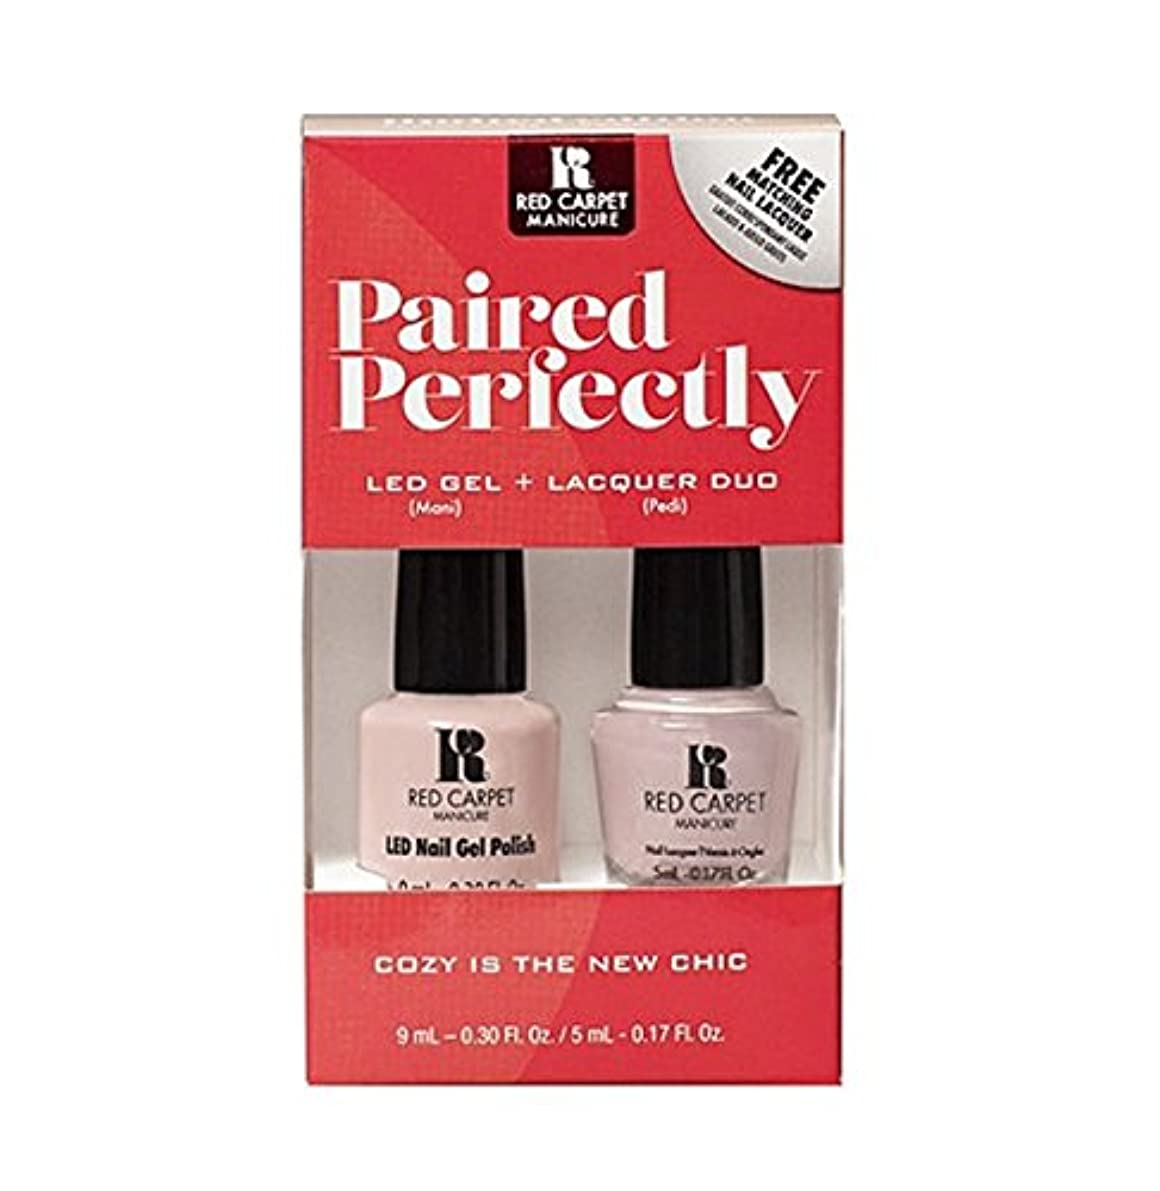 中性好ましいすぐにRed Carpet Manicure - Paired Perfectly GEL & Lacquer DUO - Cozy Is the New Chic